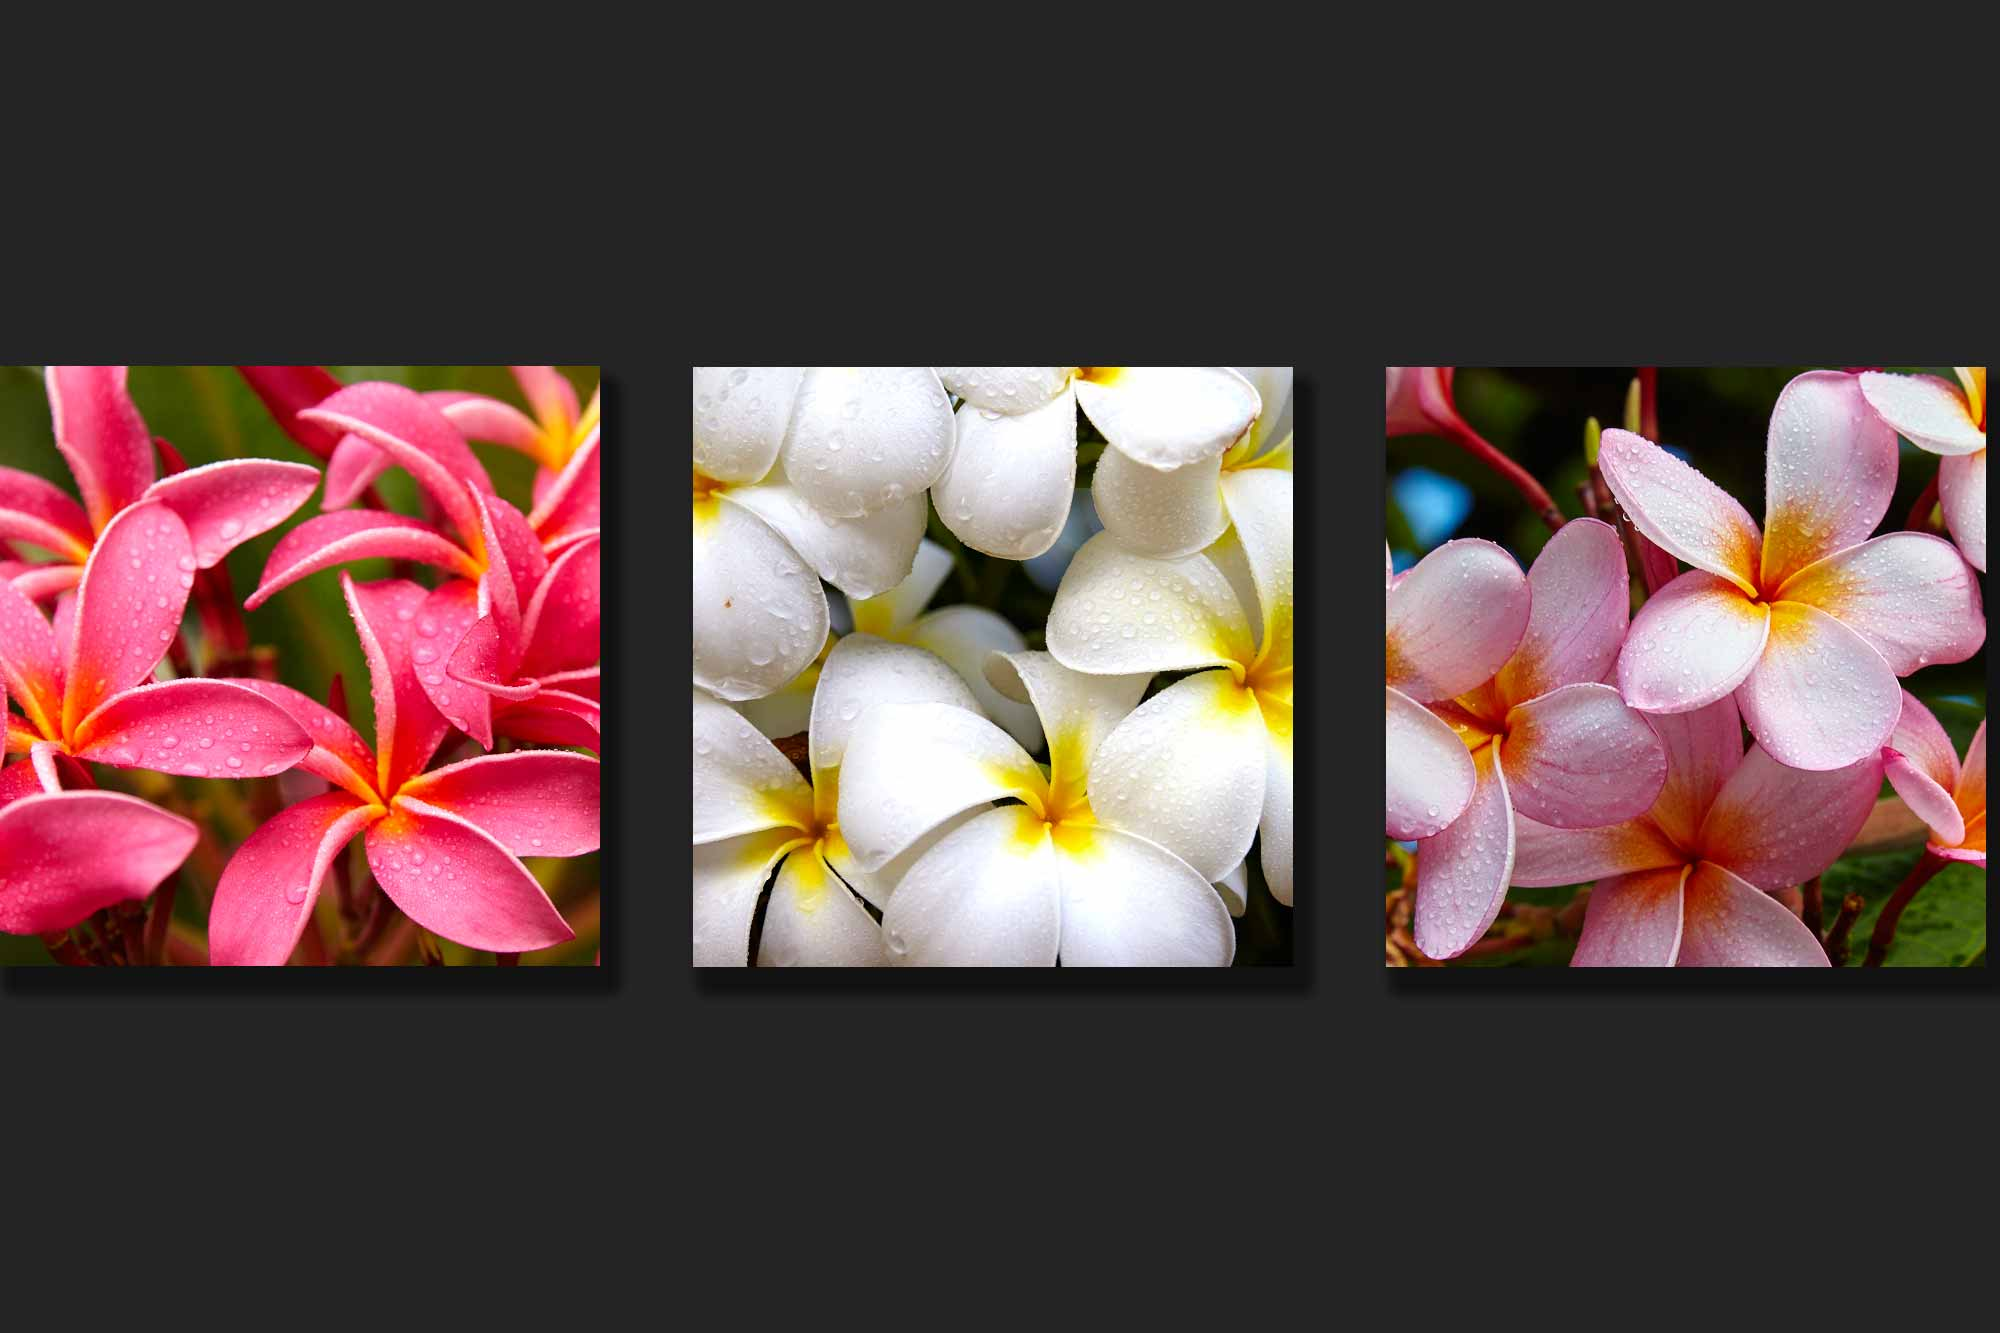 Hawaiian blossoms plumeria david balyeat photography portfolio plumeria flowers hawaiian blossoms honolulu high definition hd professional landscape photography izmirmasajfo